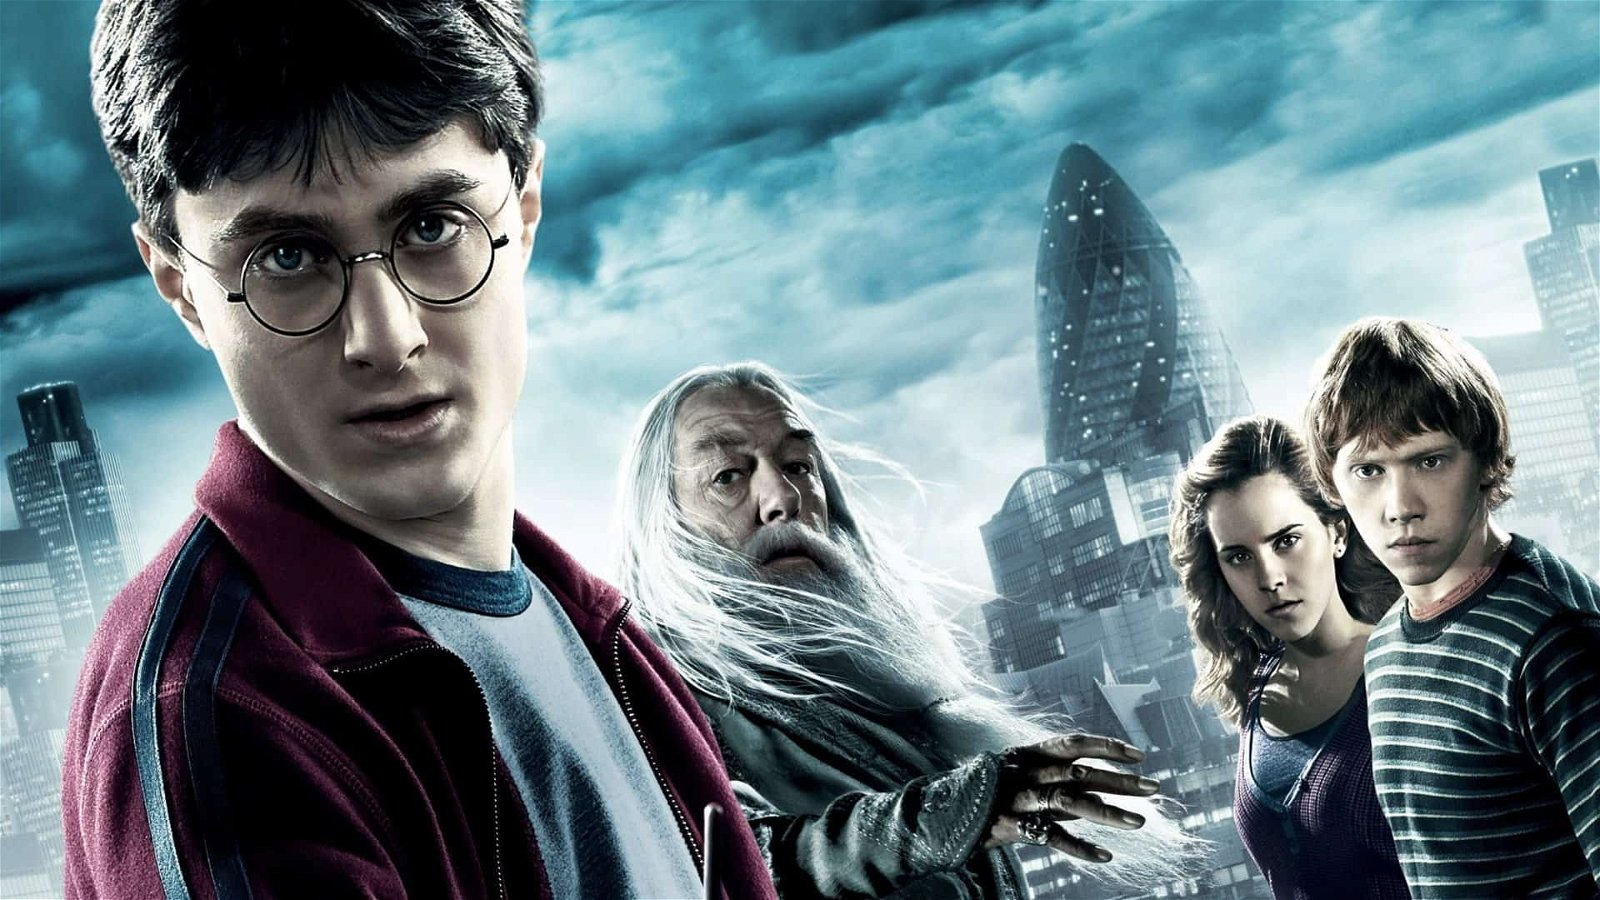 Can A New Harry Potter Game be Good?